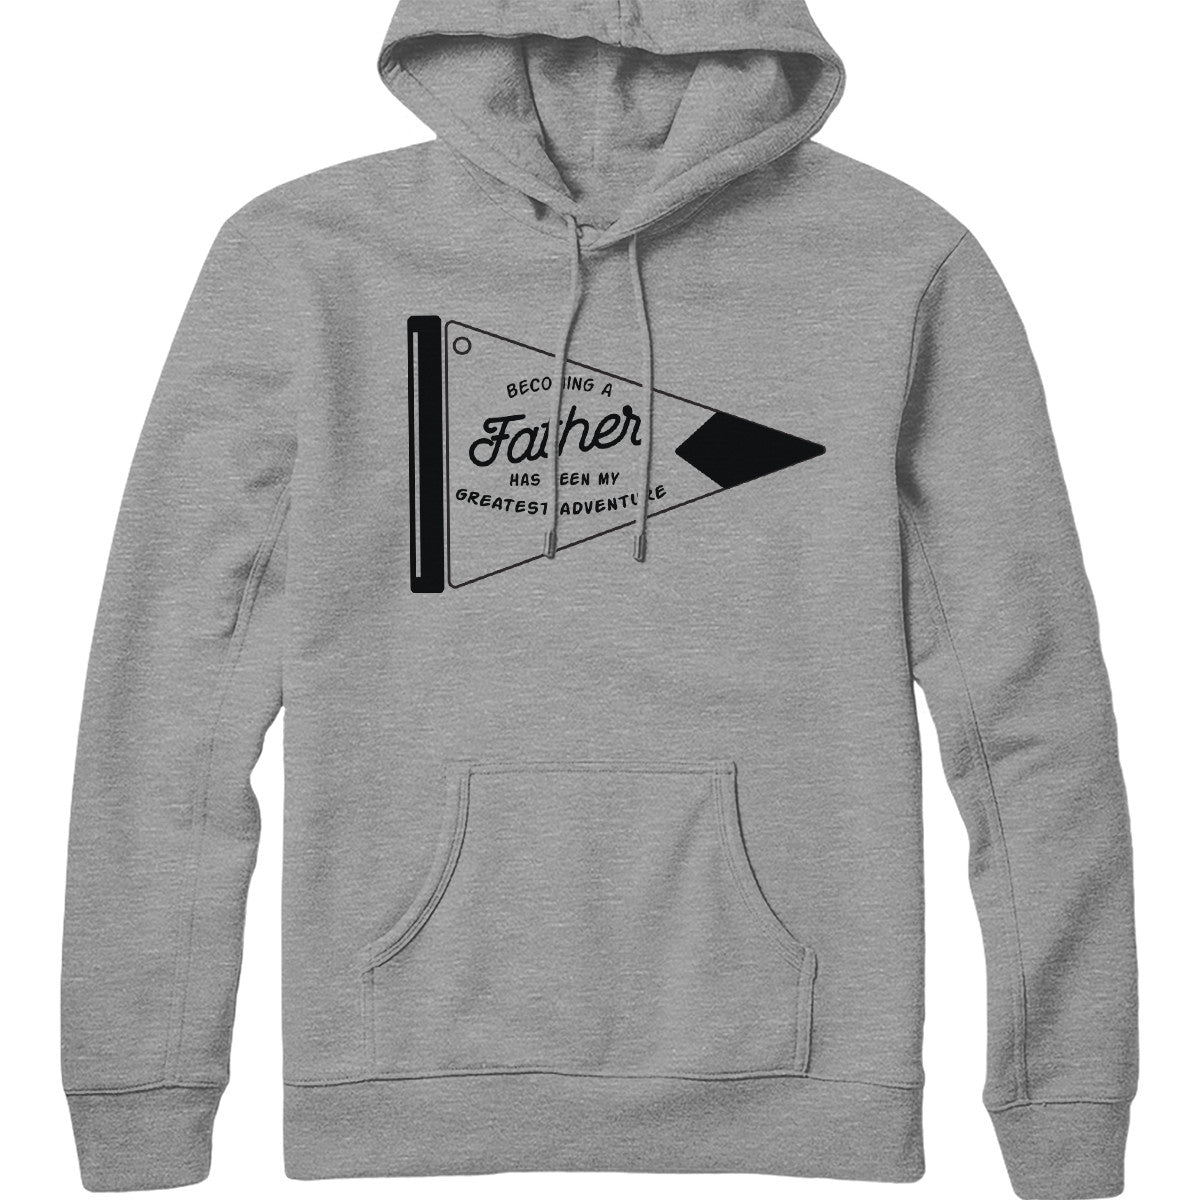 Great Adventure Hoodie